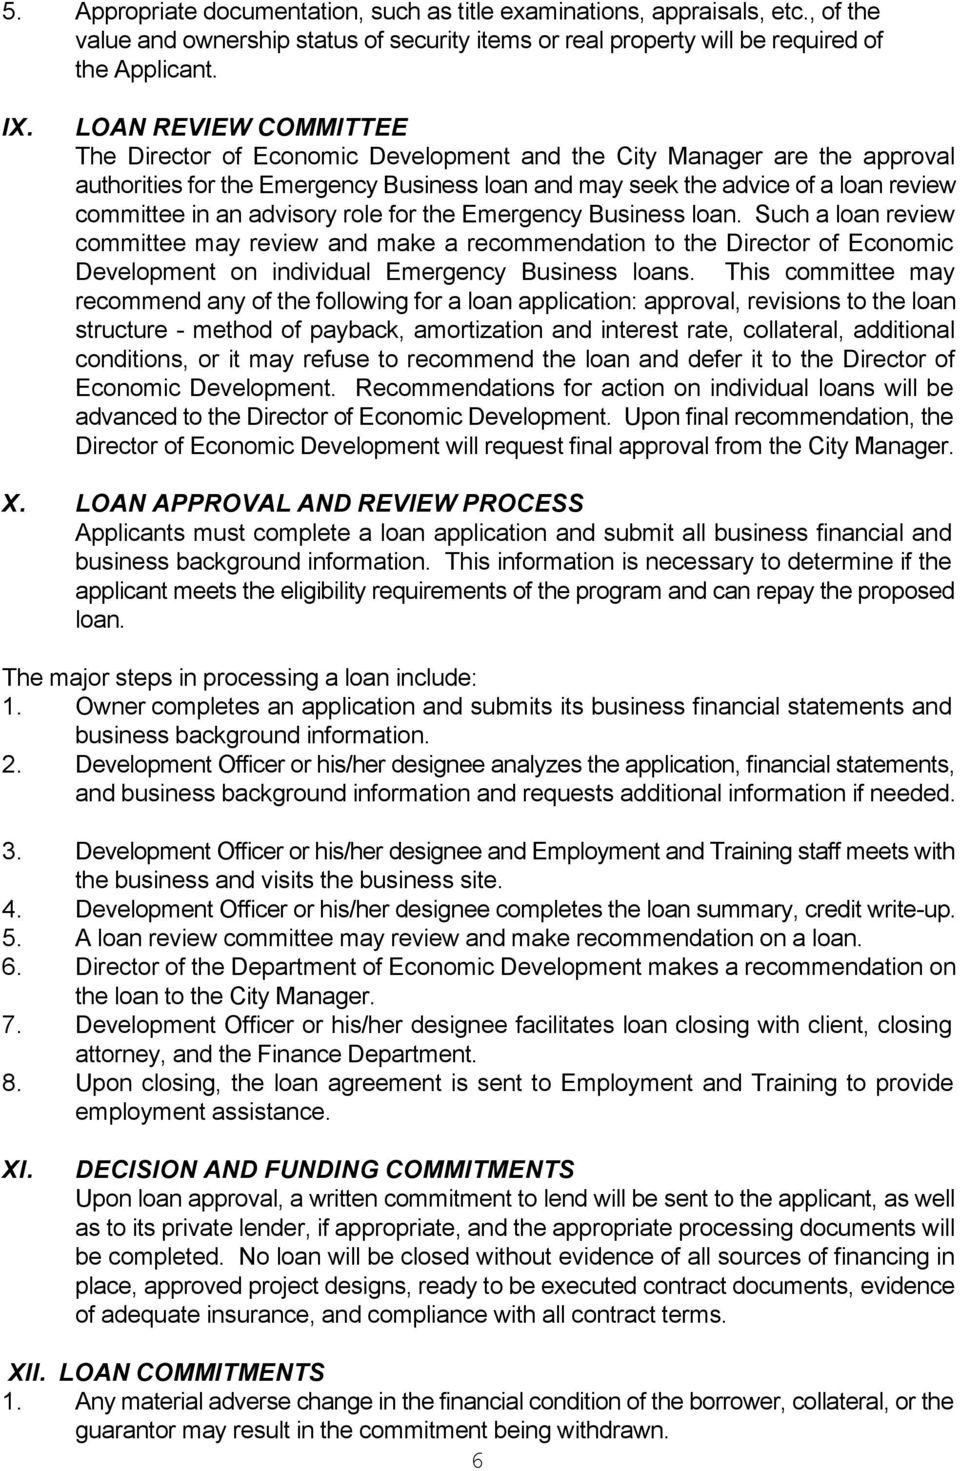 advisory role for the Emergency Business loan. Such a loan review committee may review and make a recommendation to the Director of Economic Development on individual Emergency Business loans.